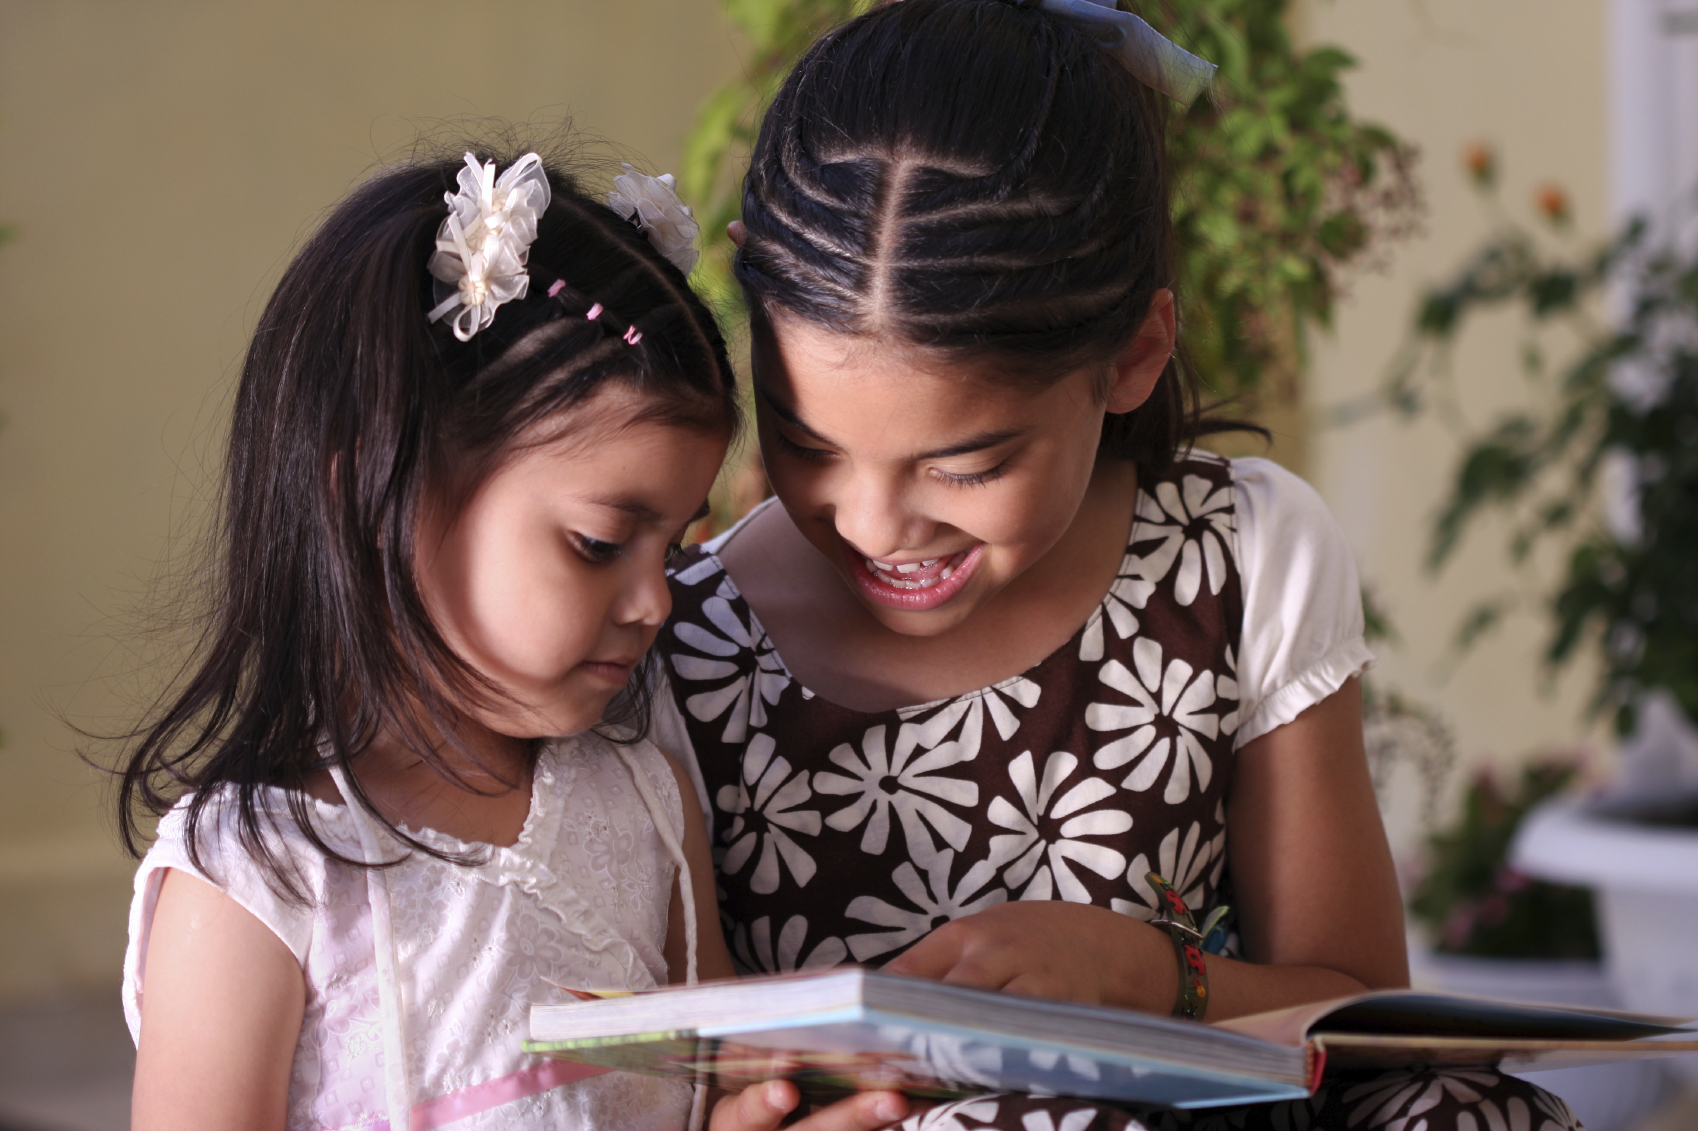 Two Hispanic Sisters Looking at Book